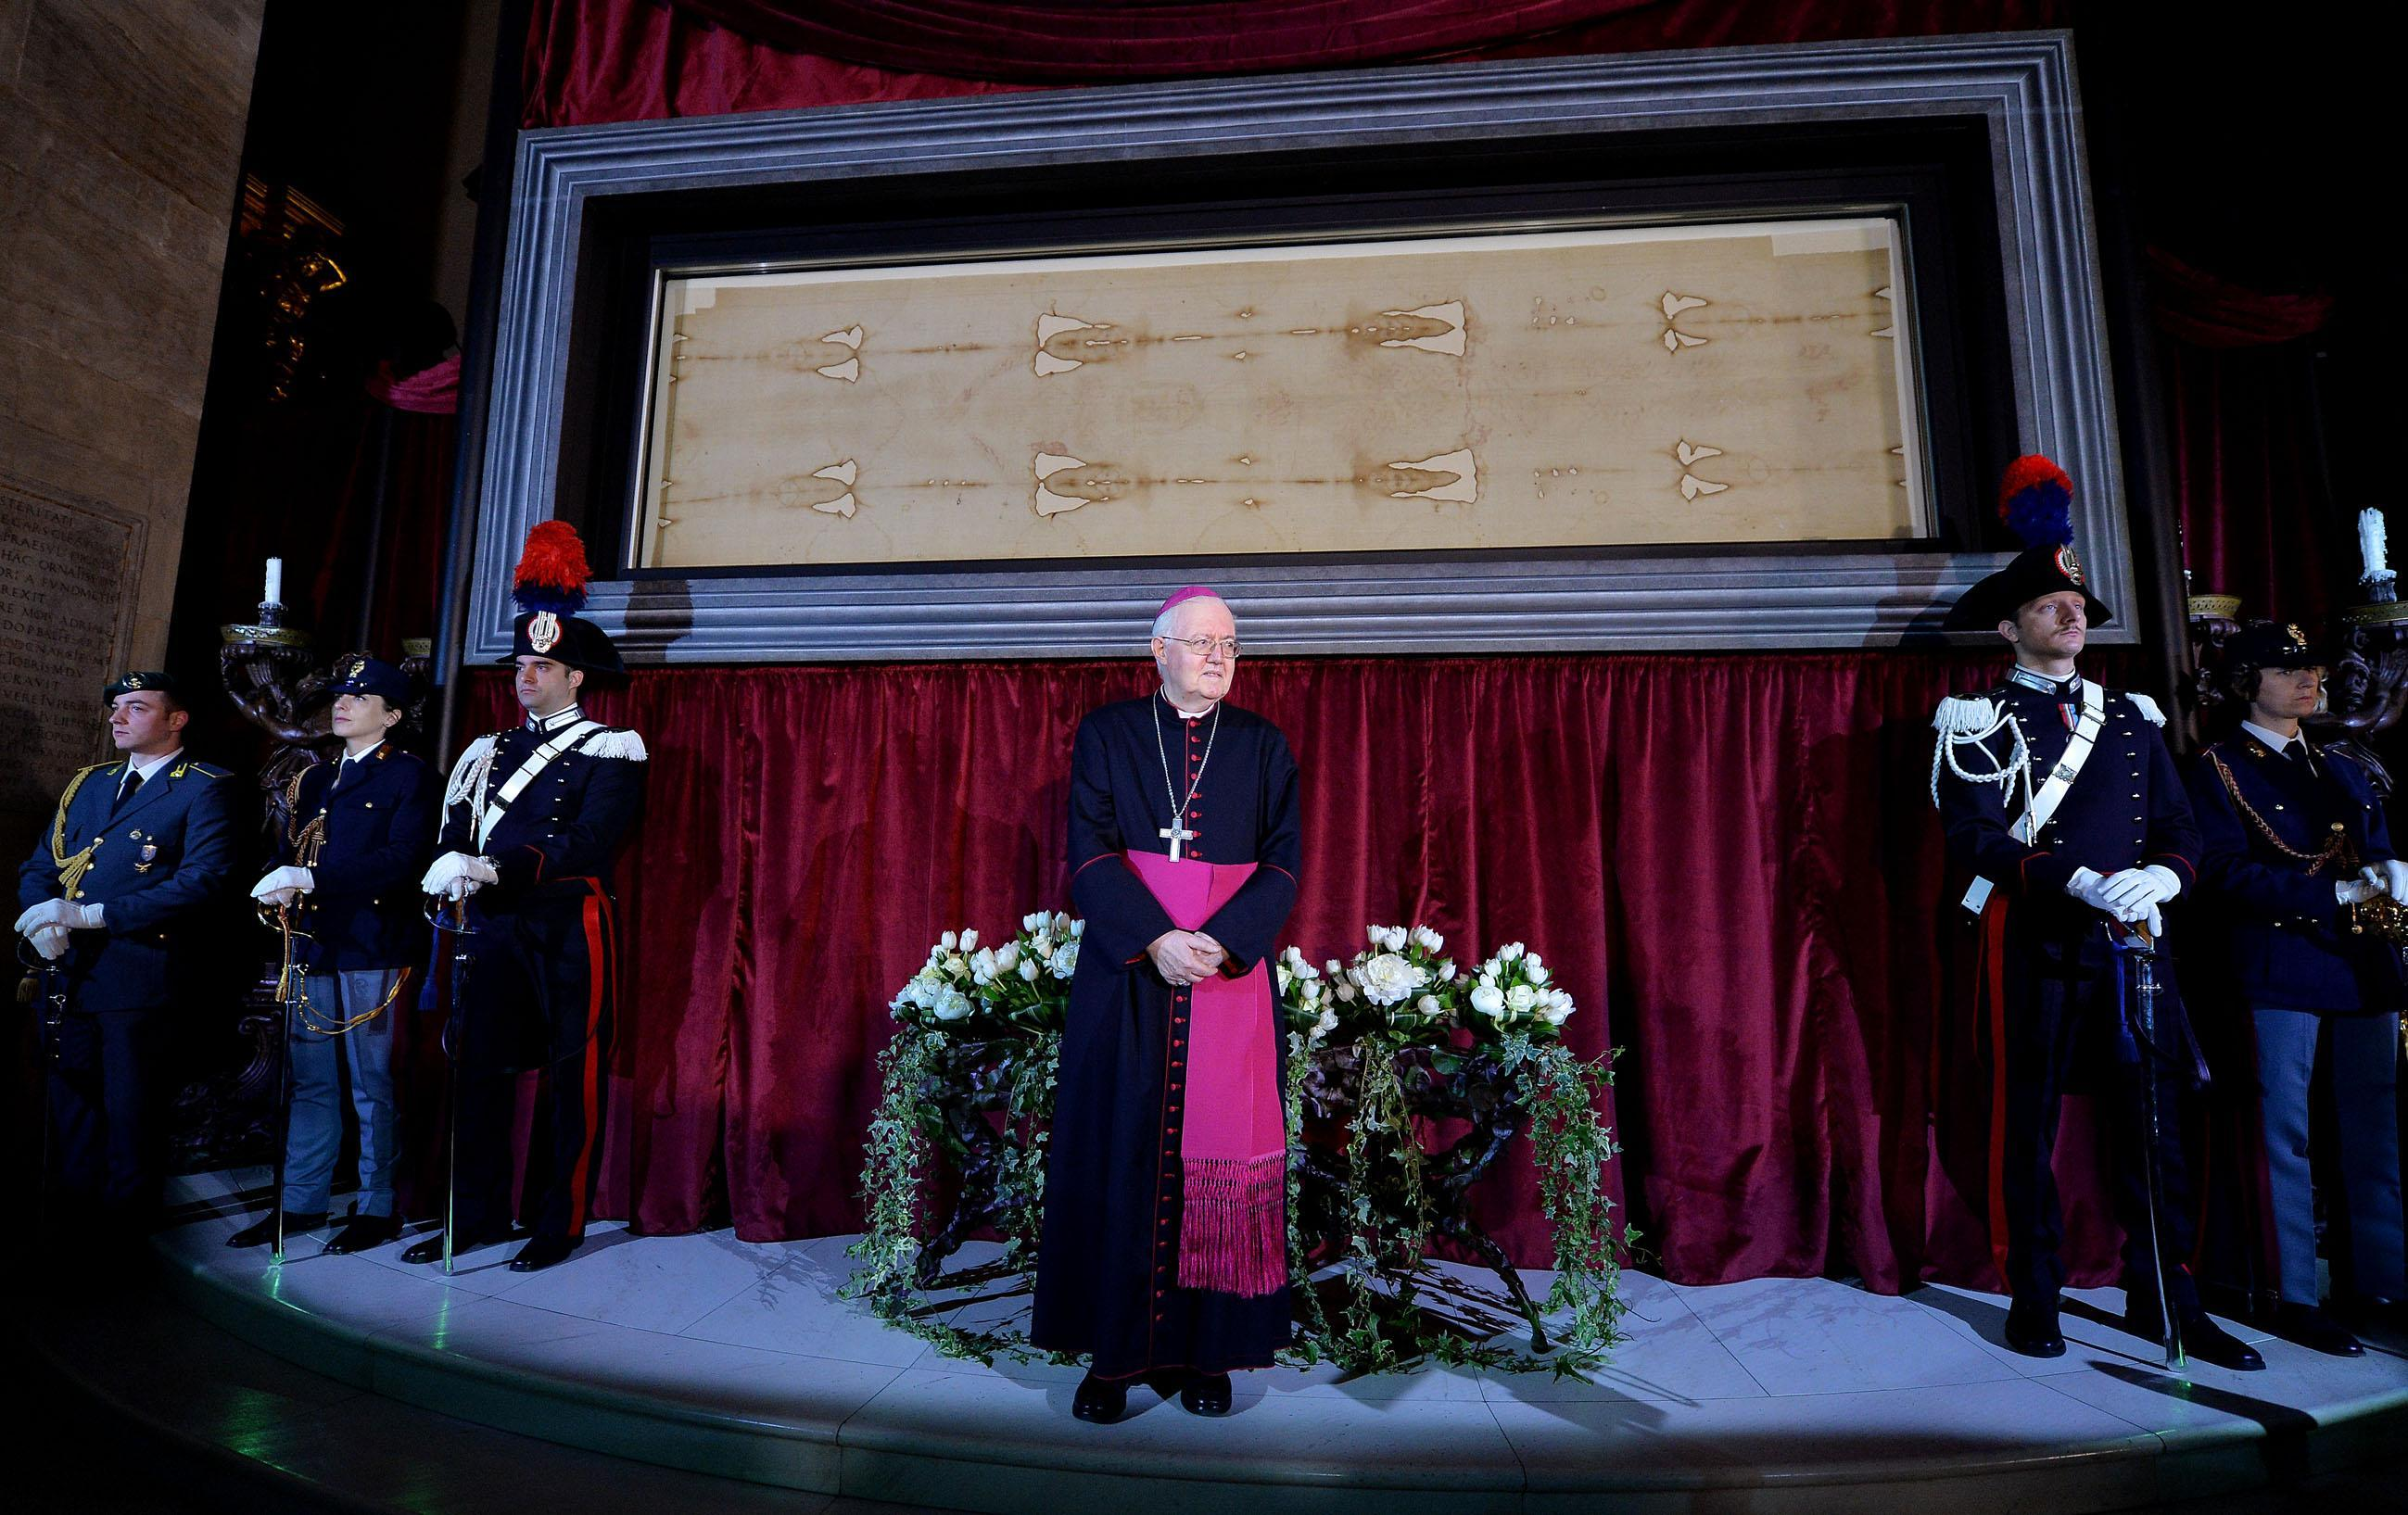 Archbishop Cesare Nosiglia presents the Holy Shroud on display during a preview for the press at the Cathedral of Turin